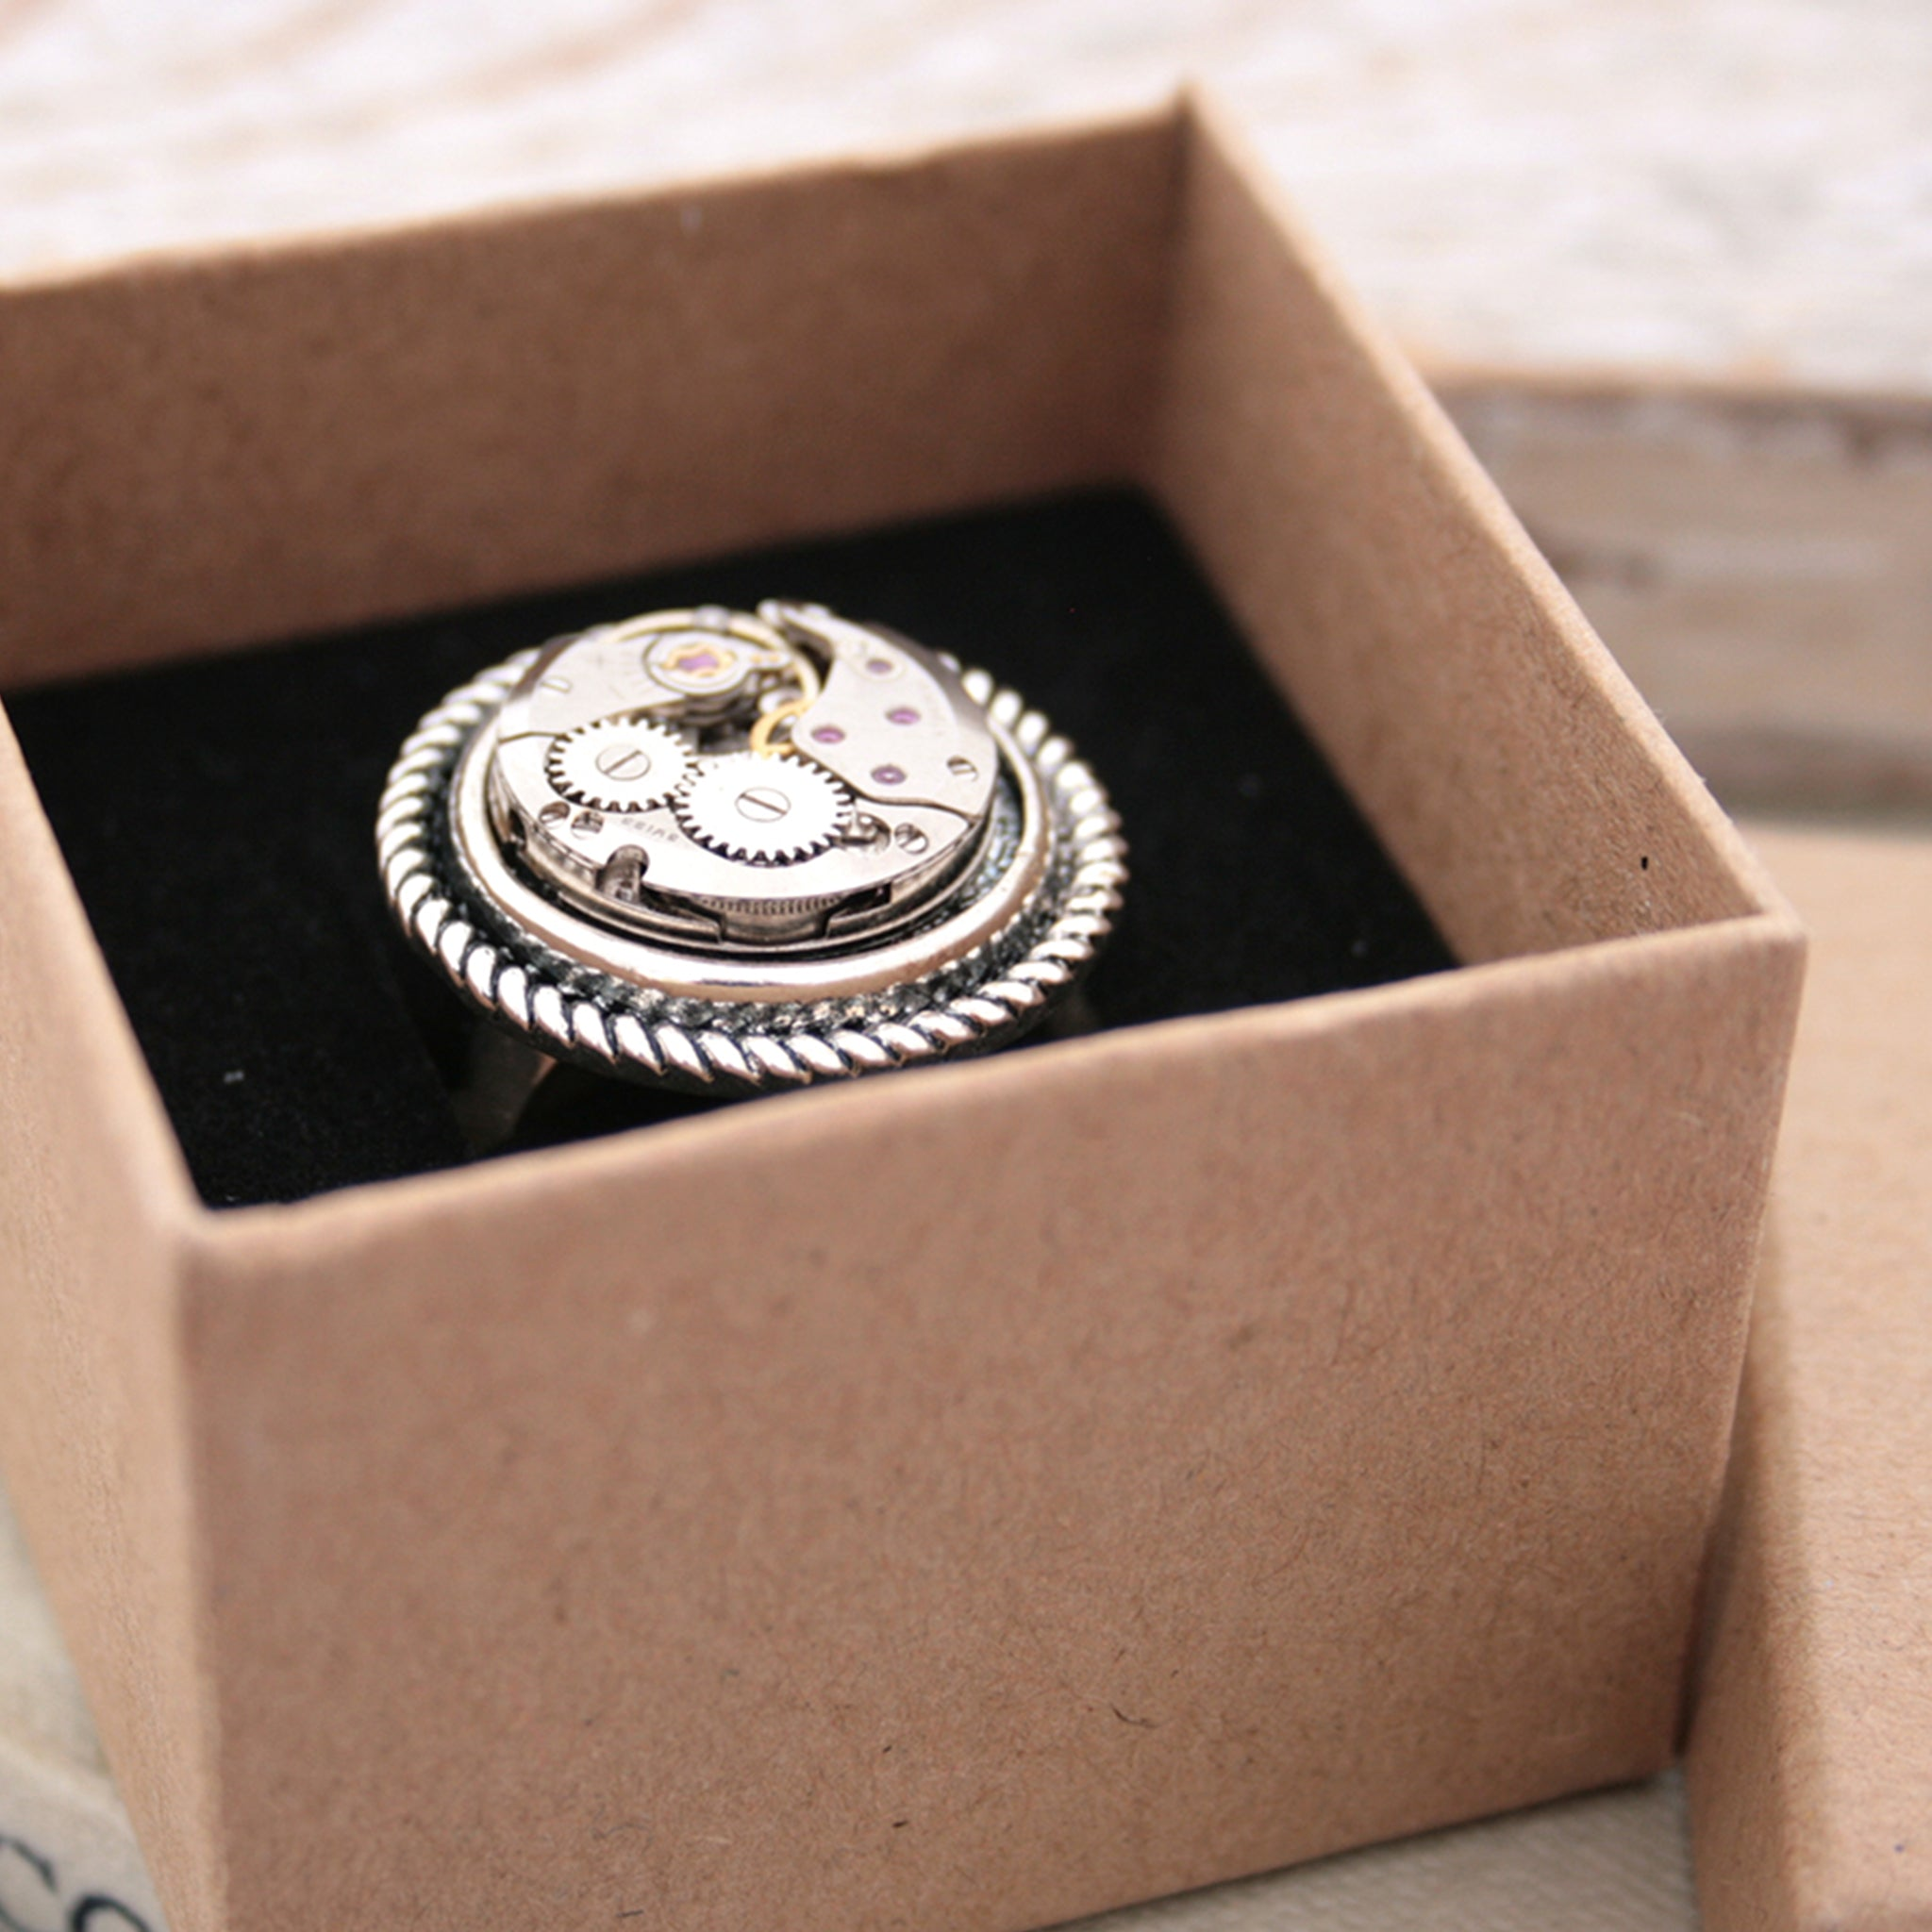 Steampunk Ring for Her made of watch work in a box